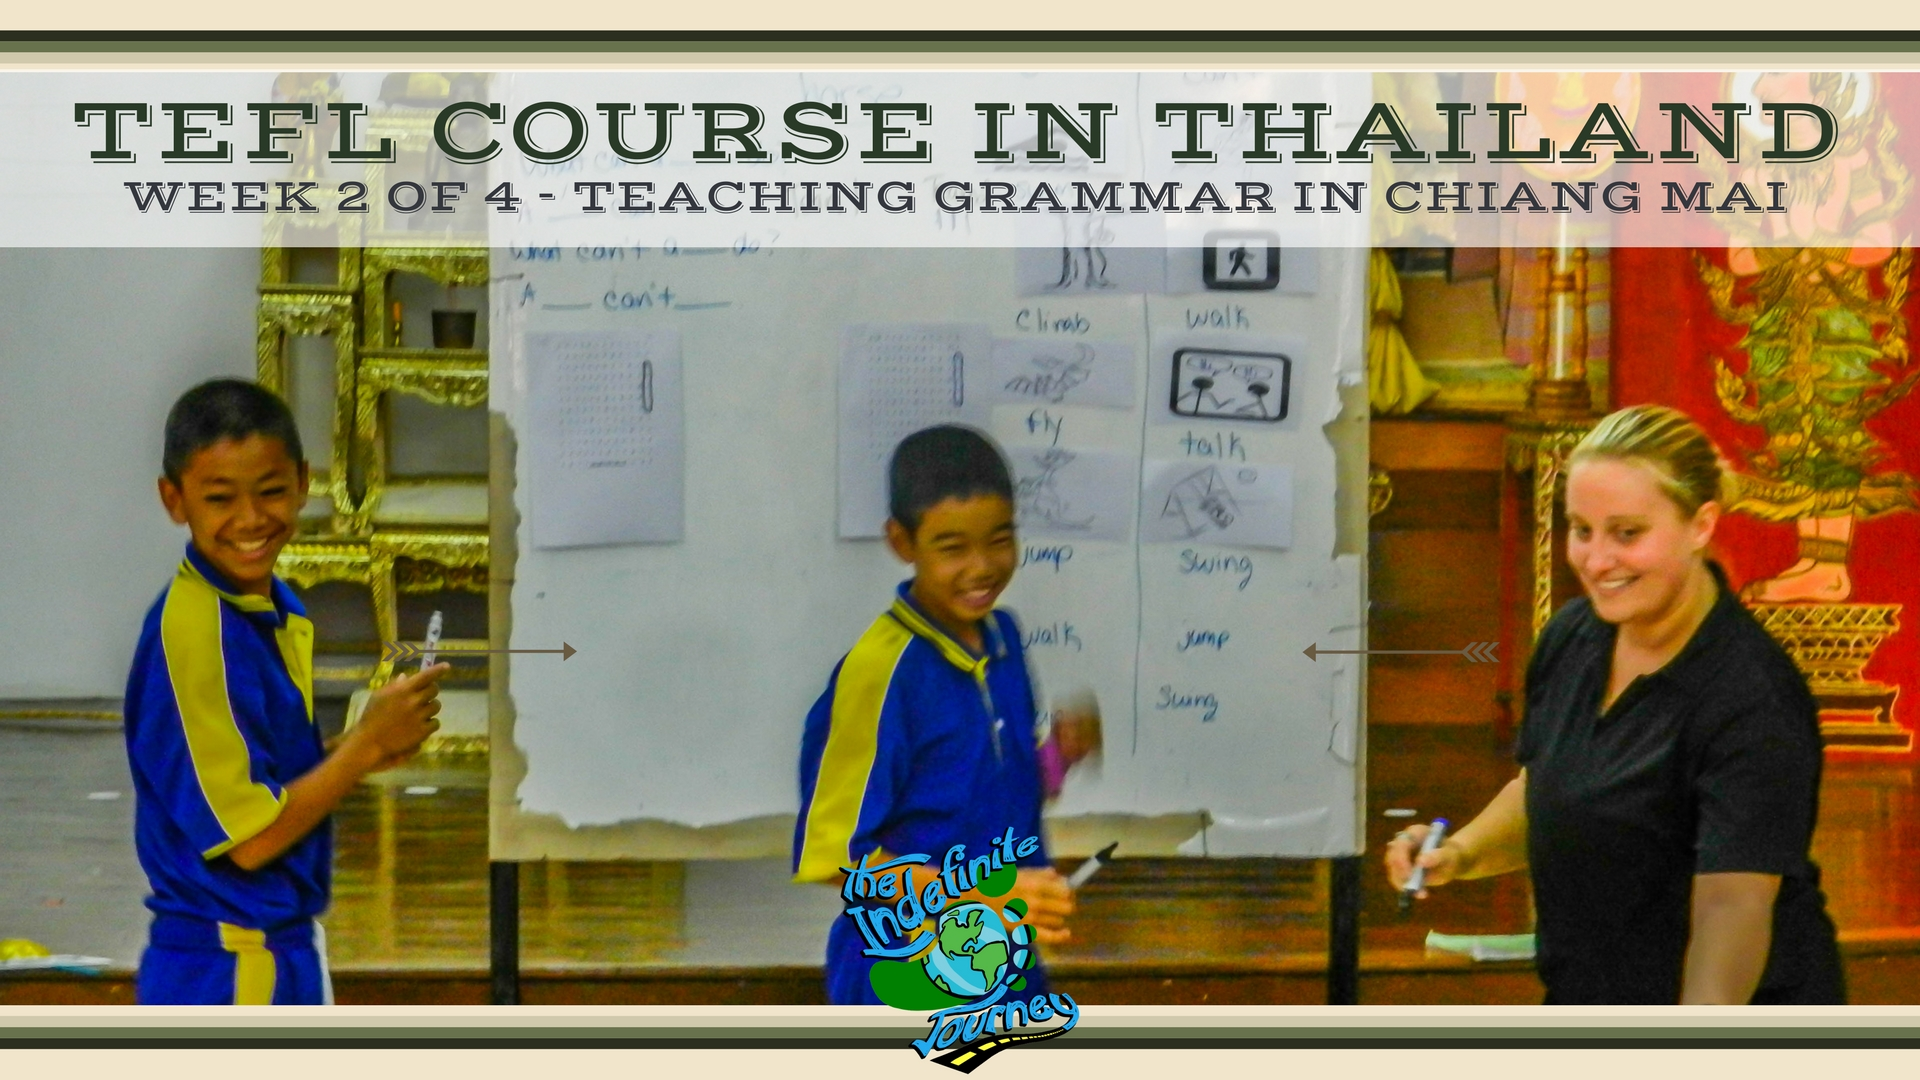 TEFL Course in Thailand- Week 2 of 4 - Teaching Grammar In Chiang Mai